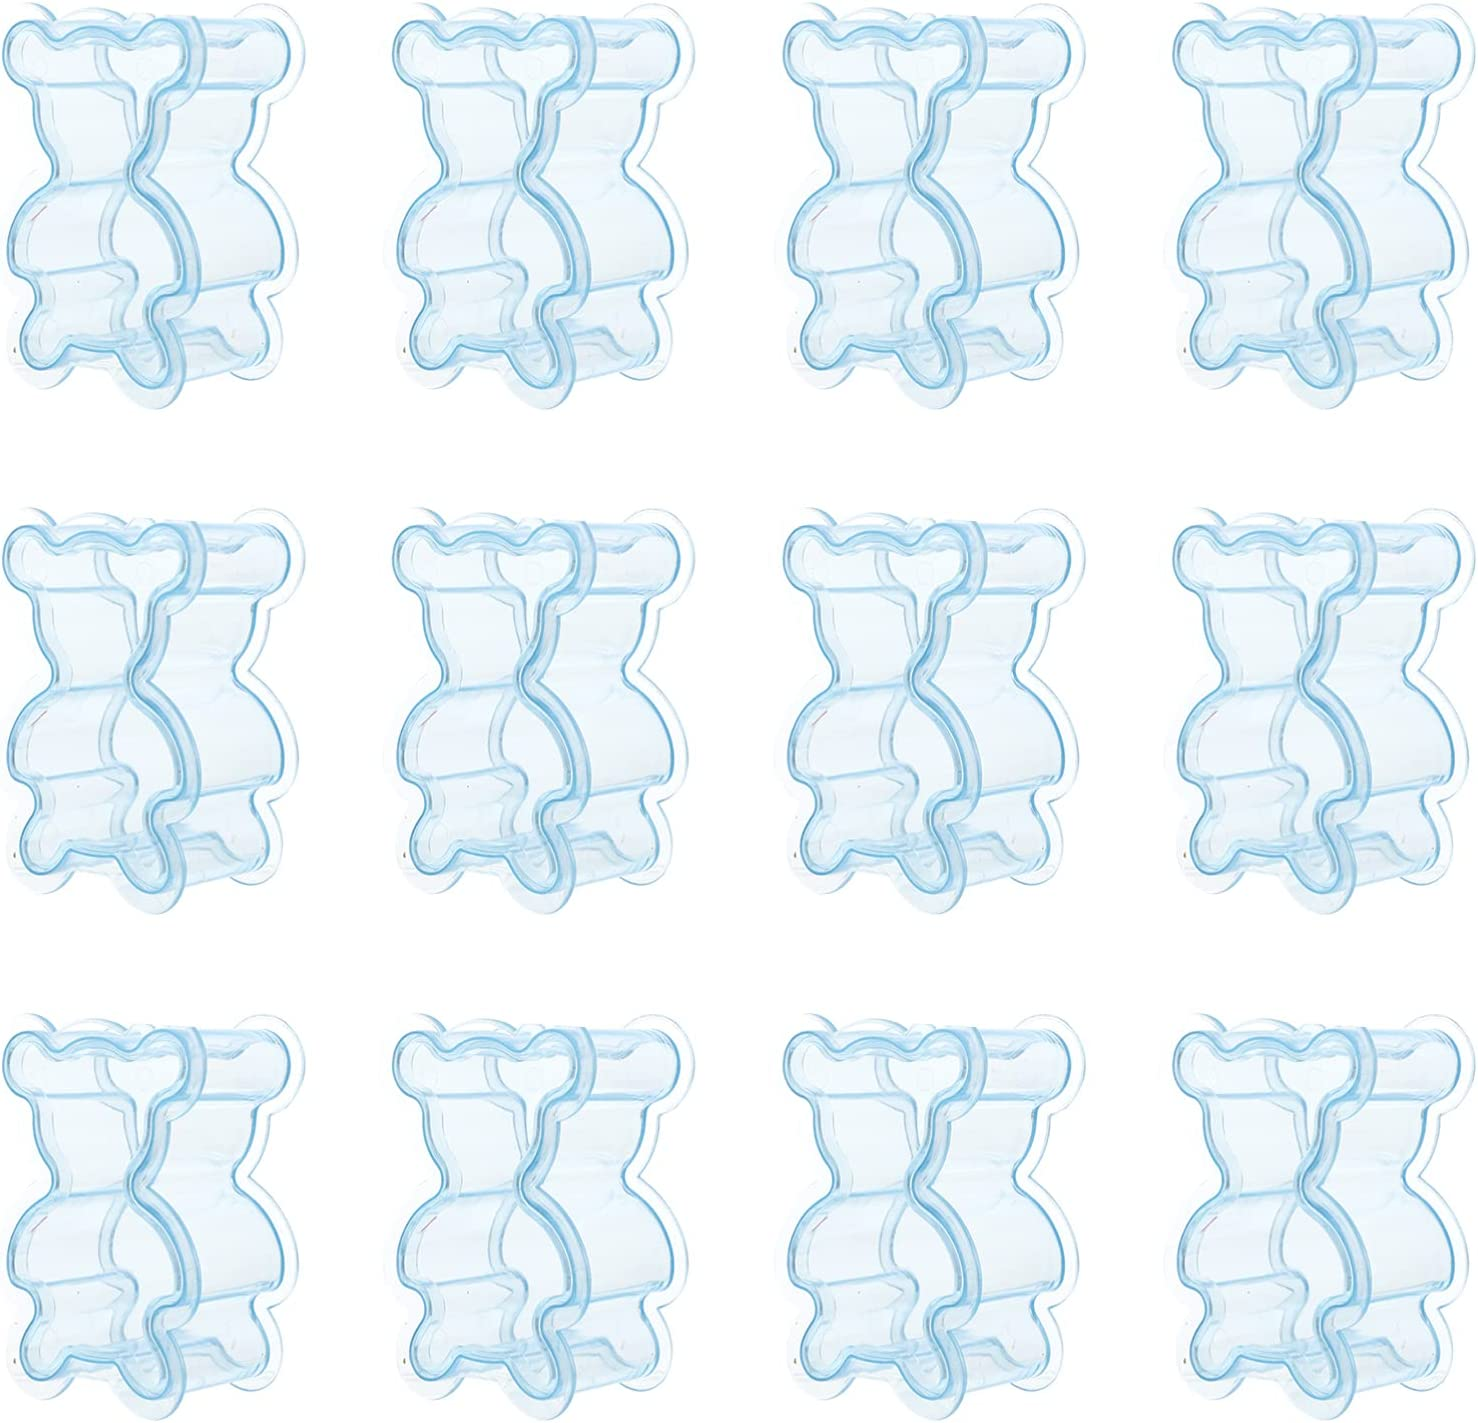 FRCOLOR 12pcs Clear Max 52% OFF Candy Box Bear Party Favor Shaped Tran Al sold out. Boxes